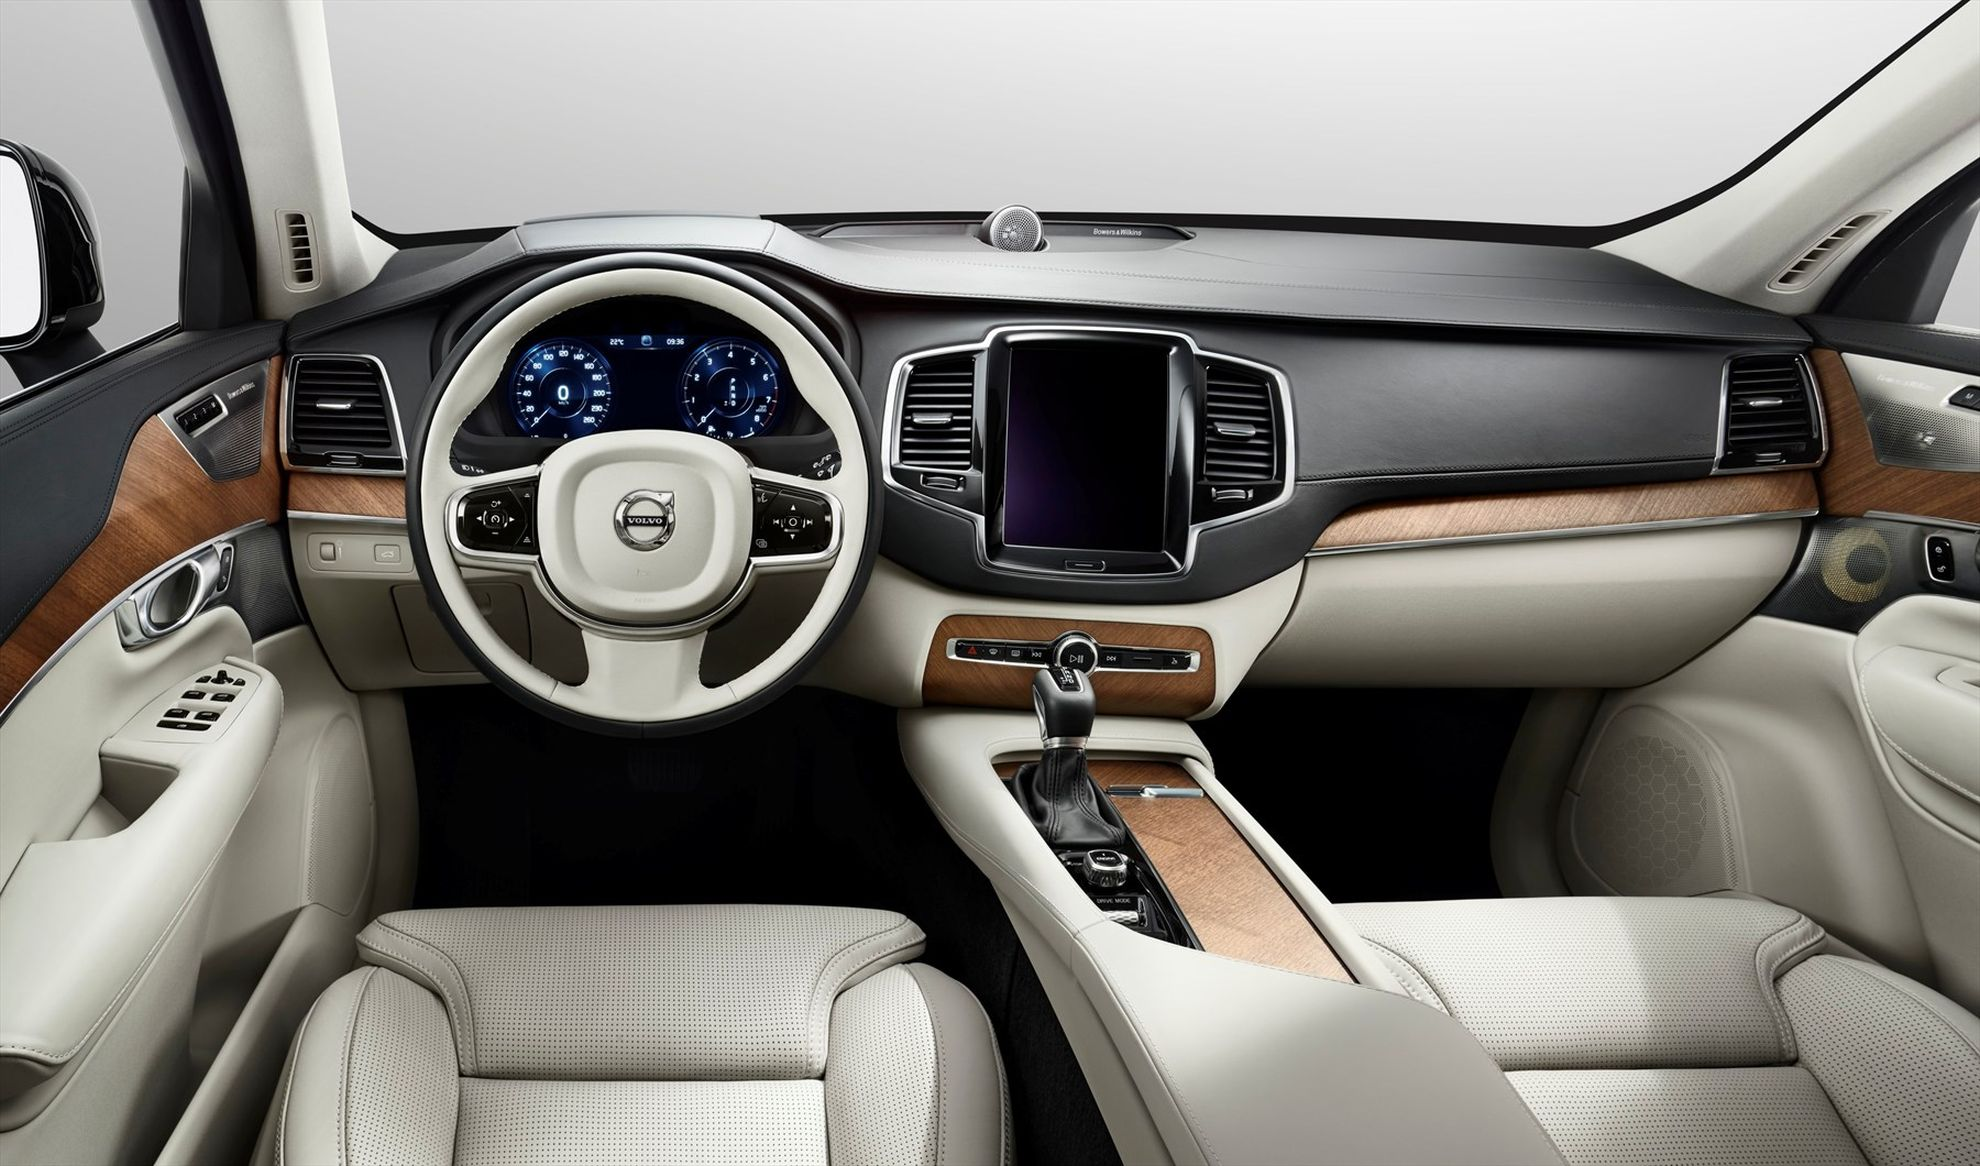 new car releases south africa 2015AllNew Volvo XC90 Launched in South Africa